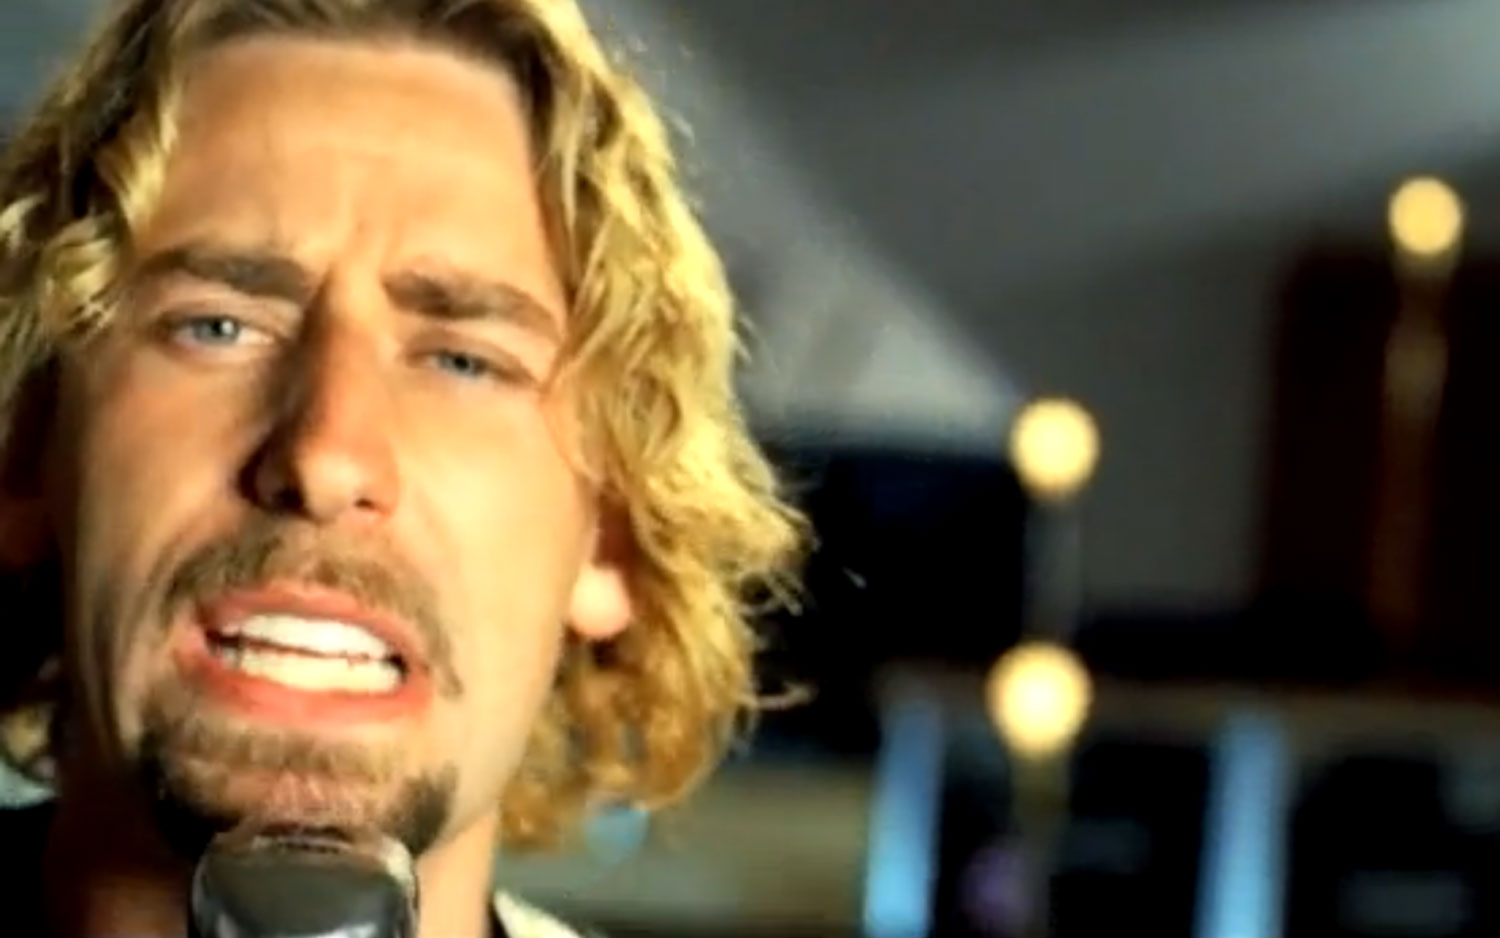 Chad-Kroeger-Nickelback-Terrible-Song-Driving